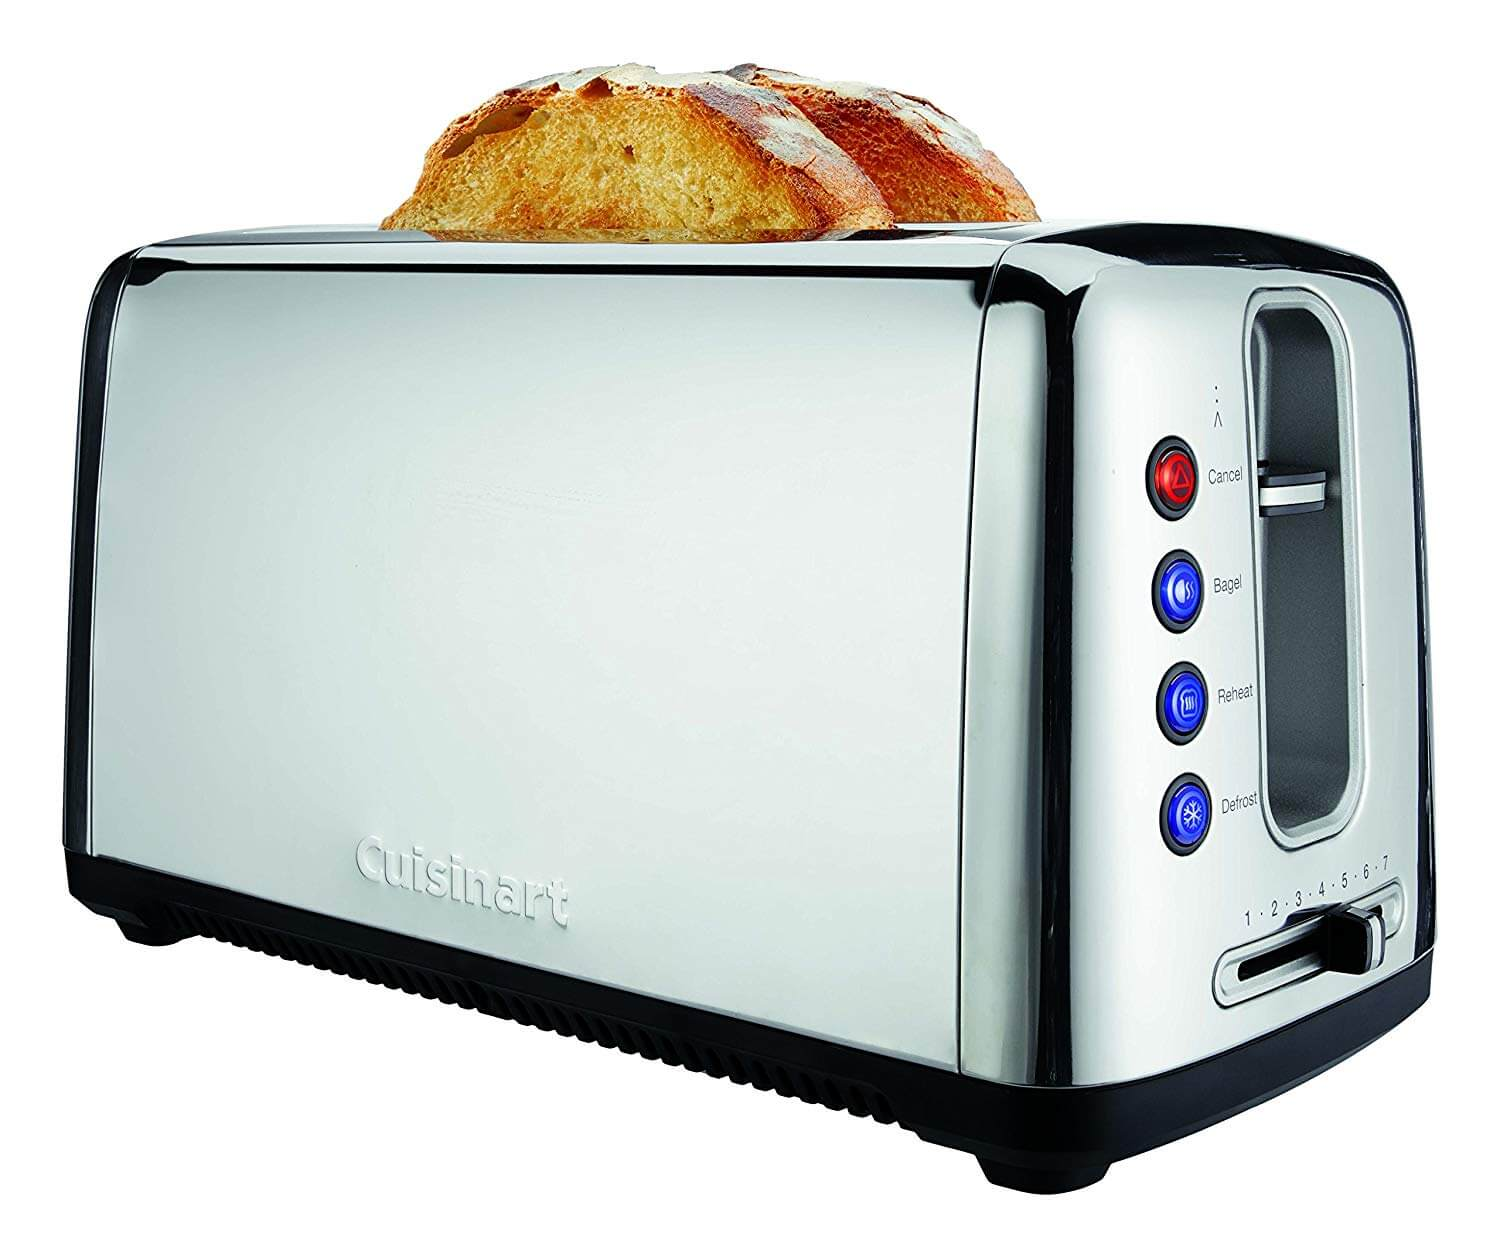 Cuisinart CPT-2400 the Bakery Artisan Bread Toaster